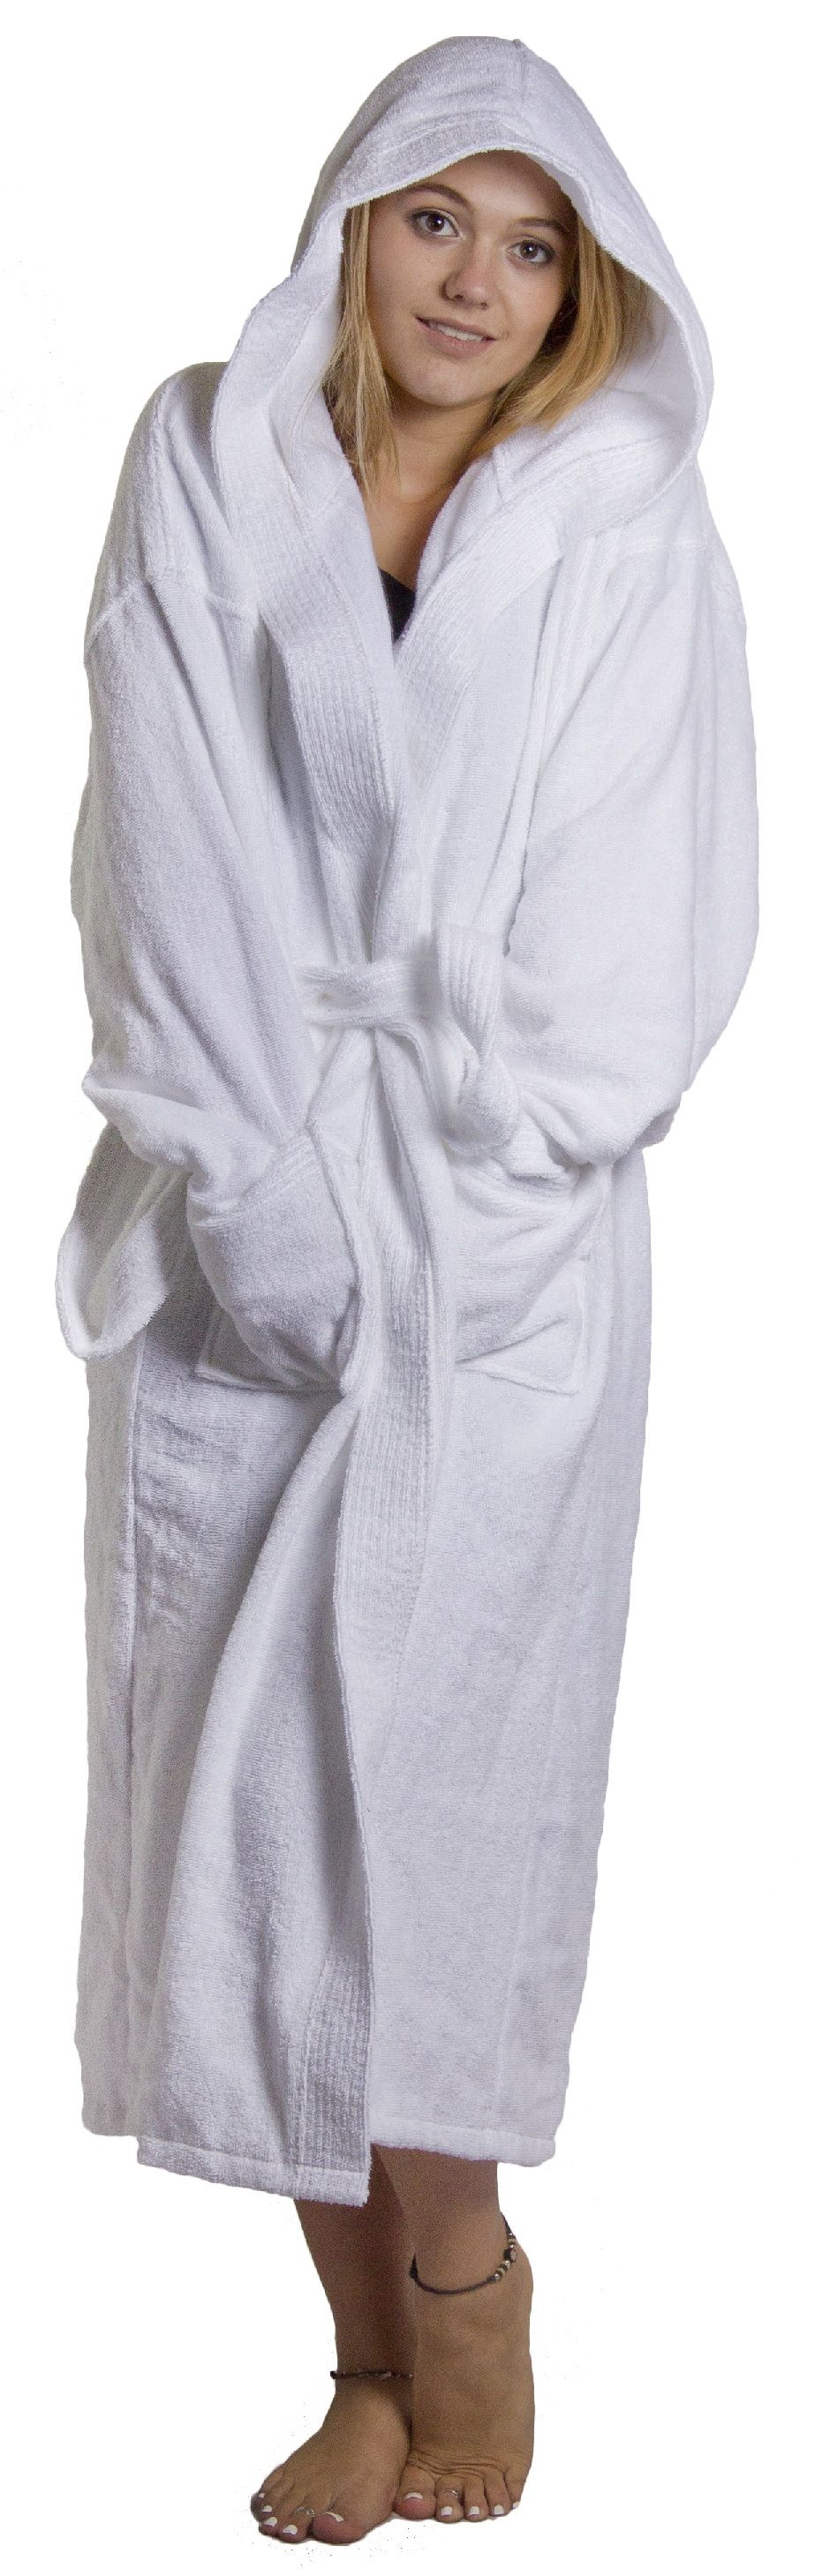 Bathrobe hooded robe 100% cotton plus xl 2xl 3xl 4xl mens ladies ...